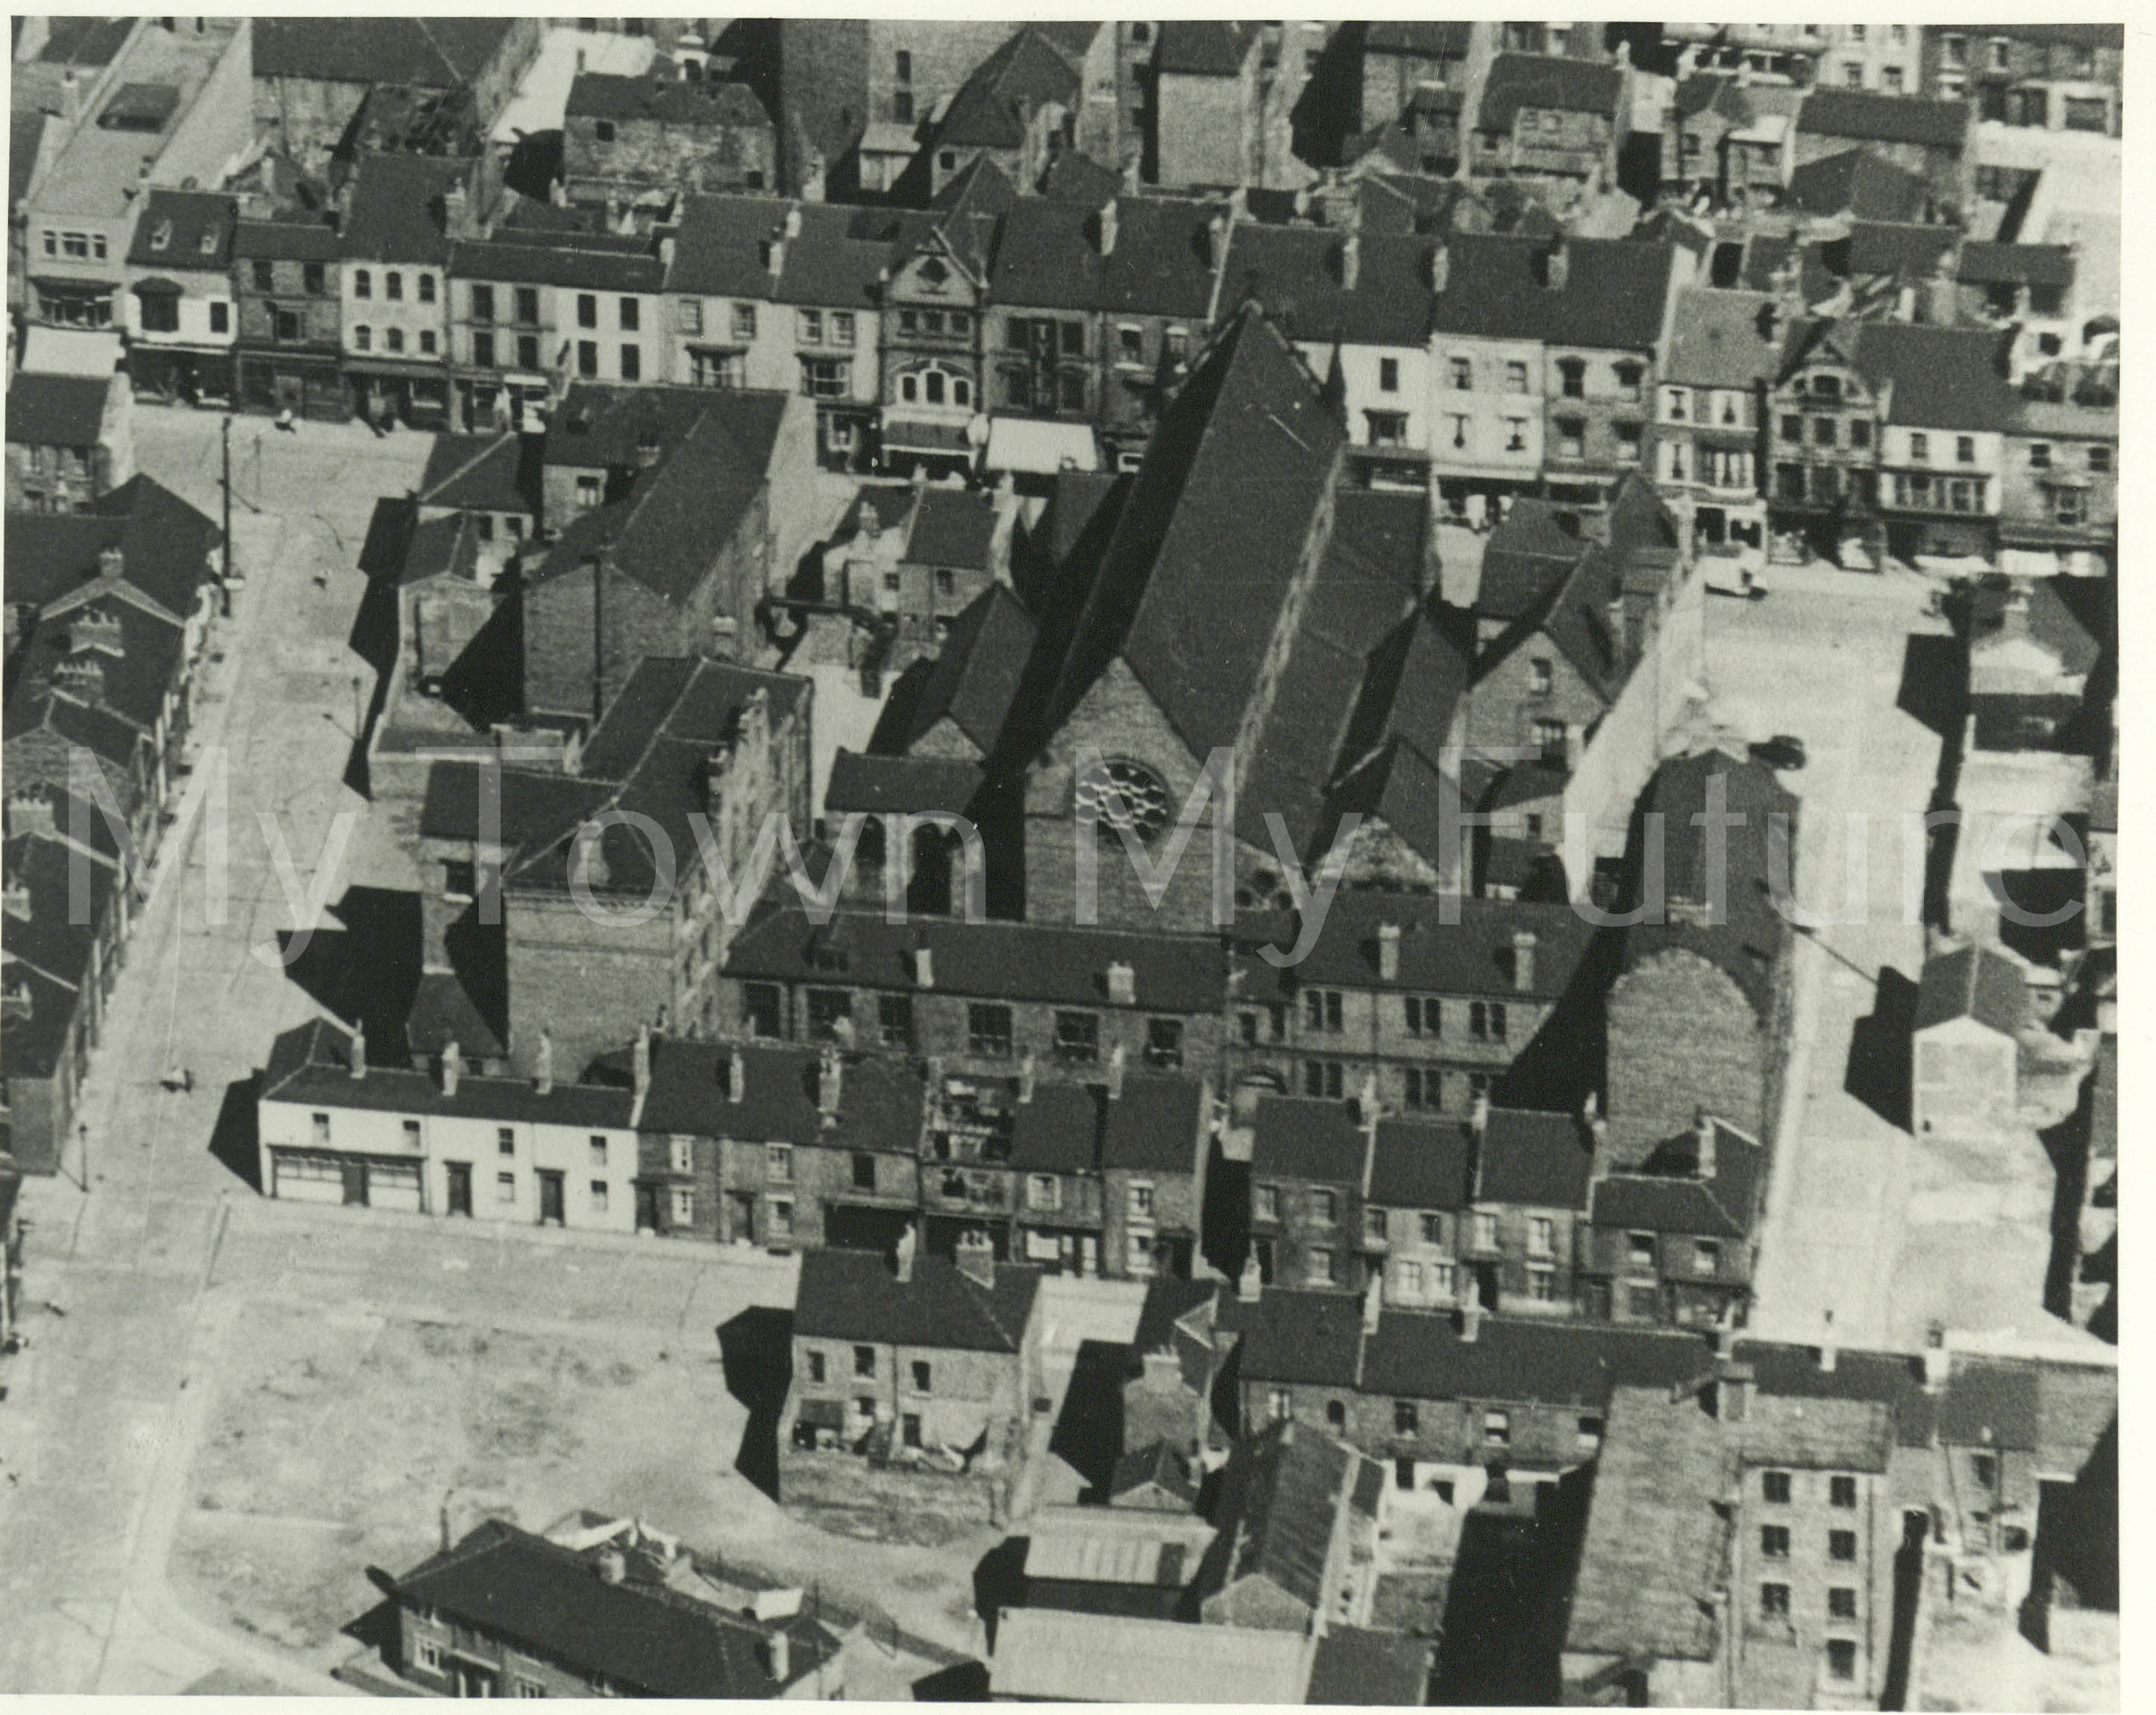 Middlesbrough St Hilda's, 1959, Department of Planning - Cleveland County Council